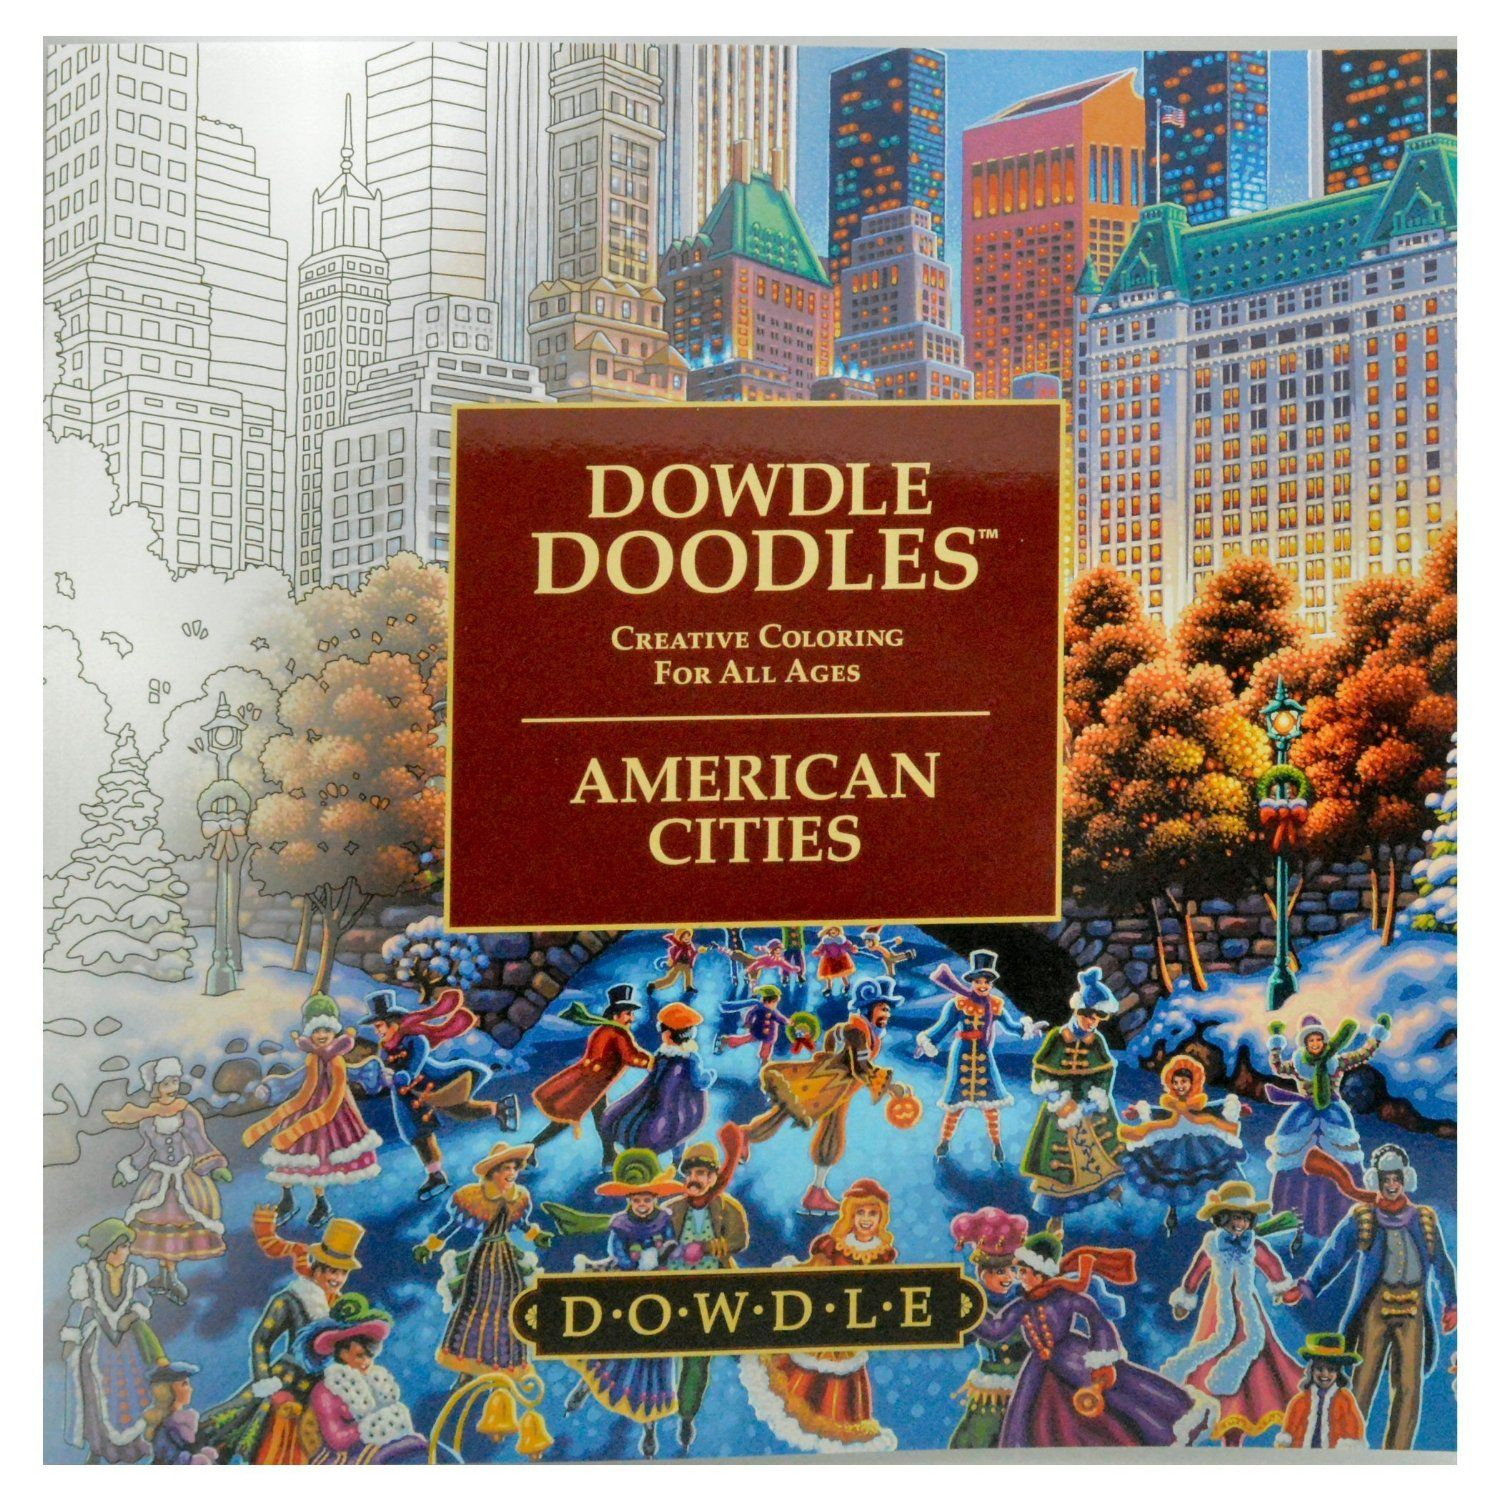 Amazon.com: Dowdle Doodles - Adult and Family Coloring Book ...